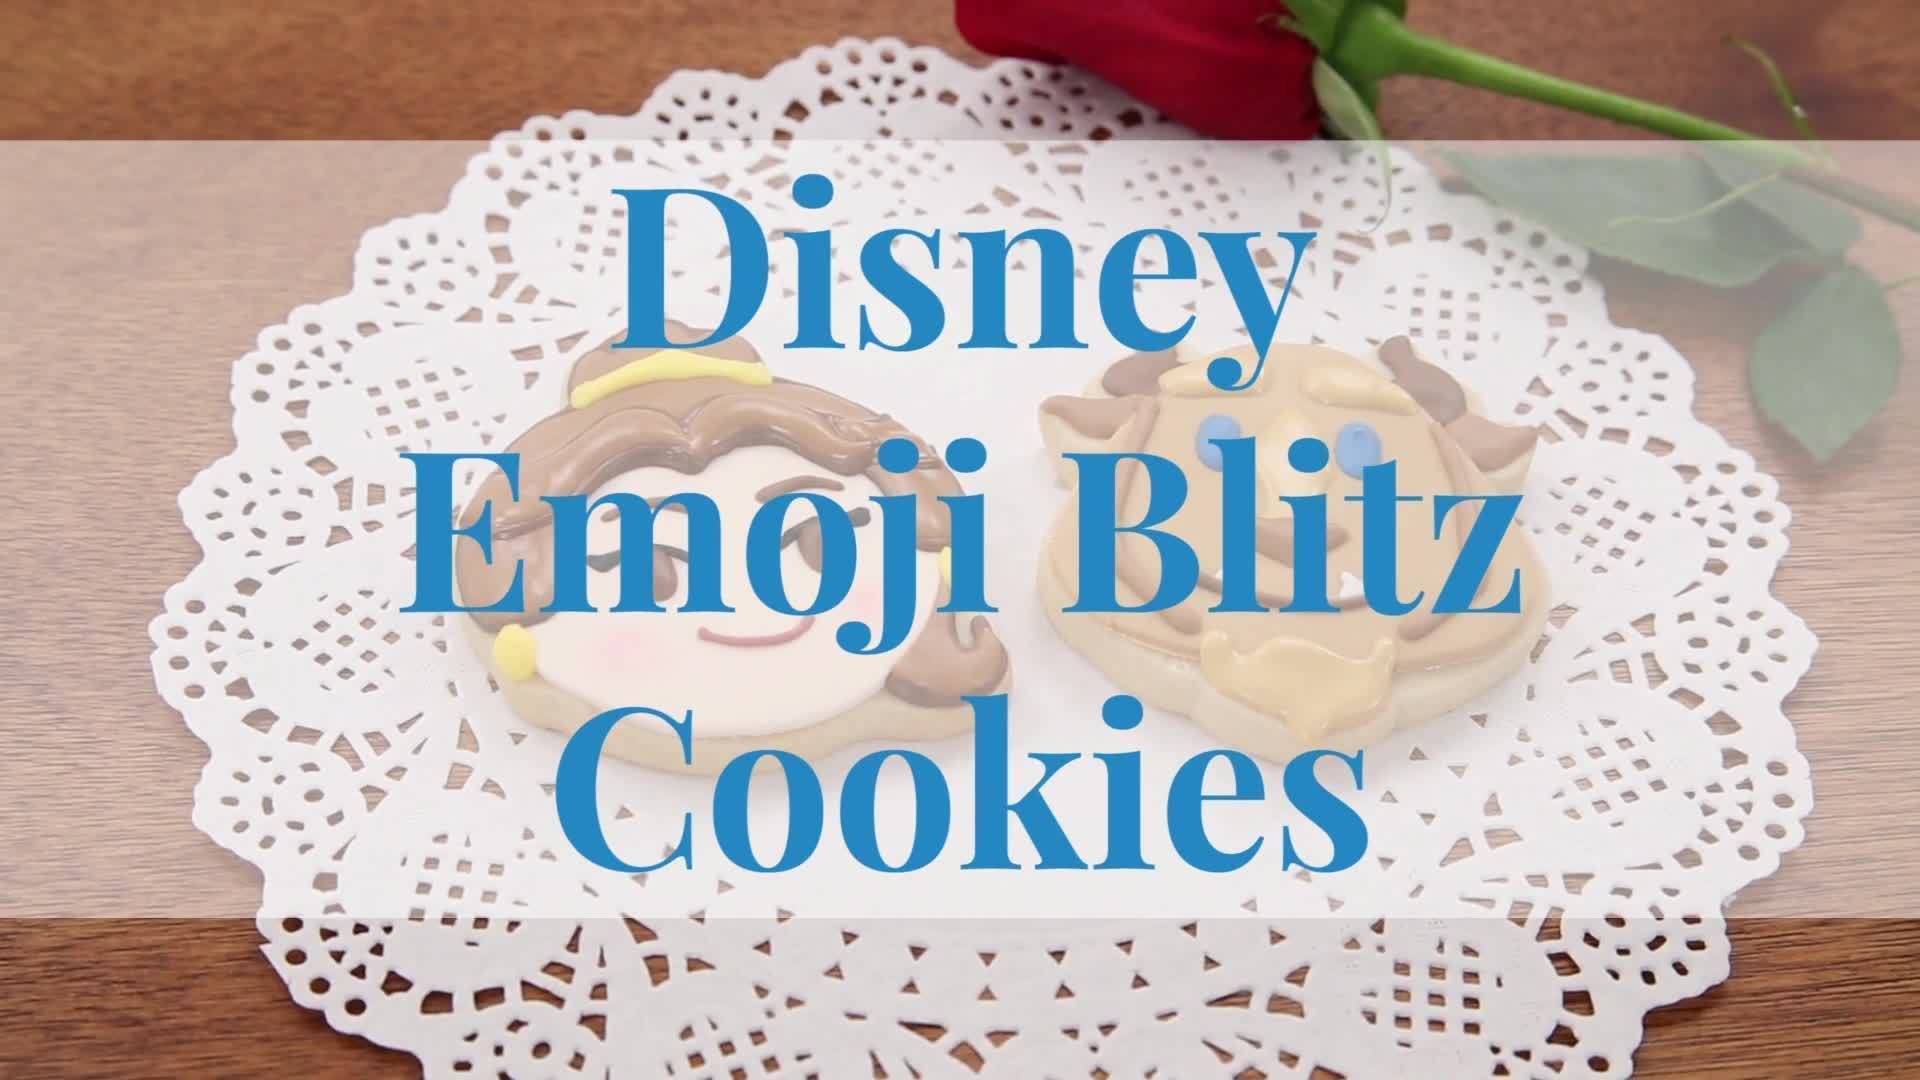 Beauty and the Beast Emoji Blitz | Dishes by Disney